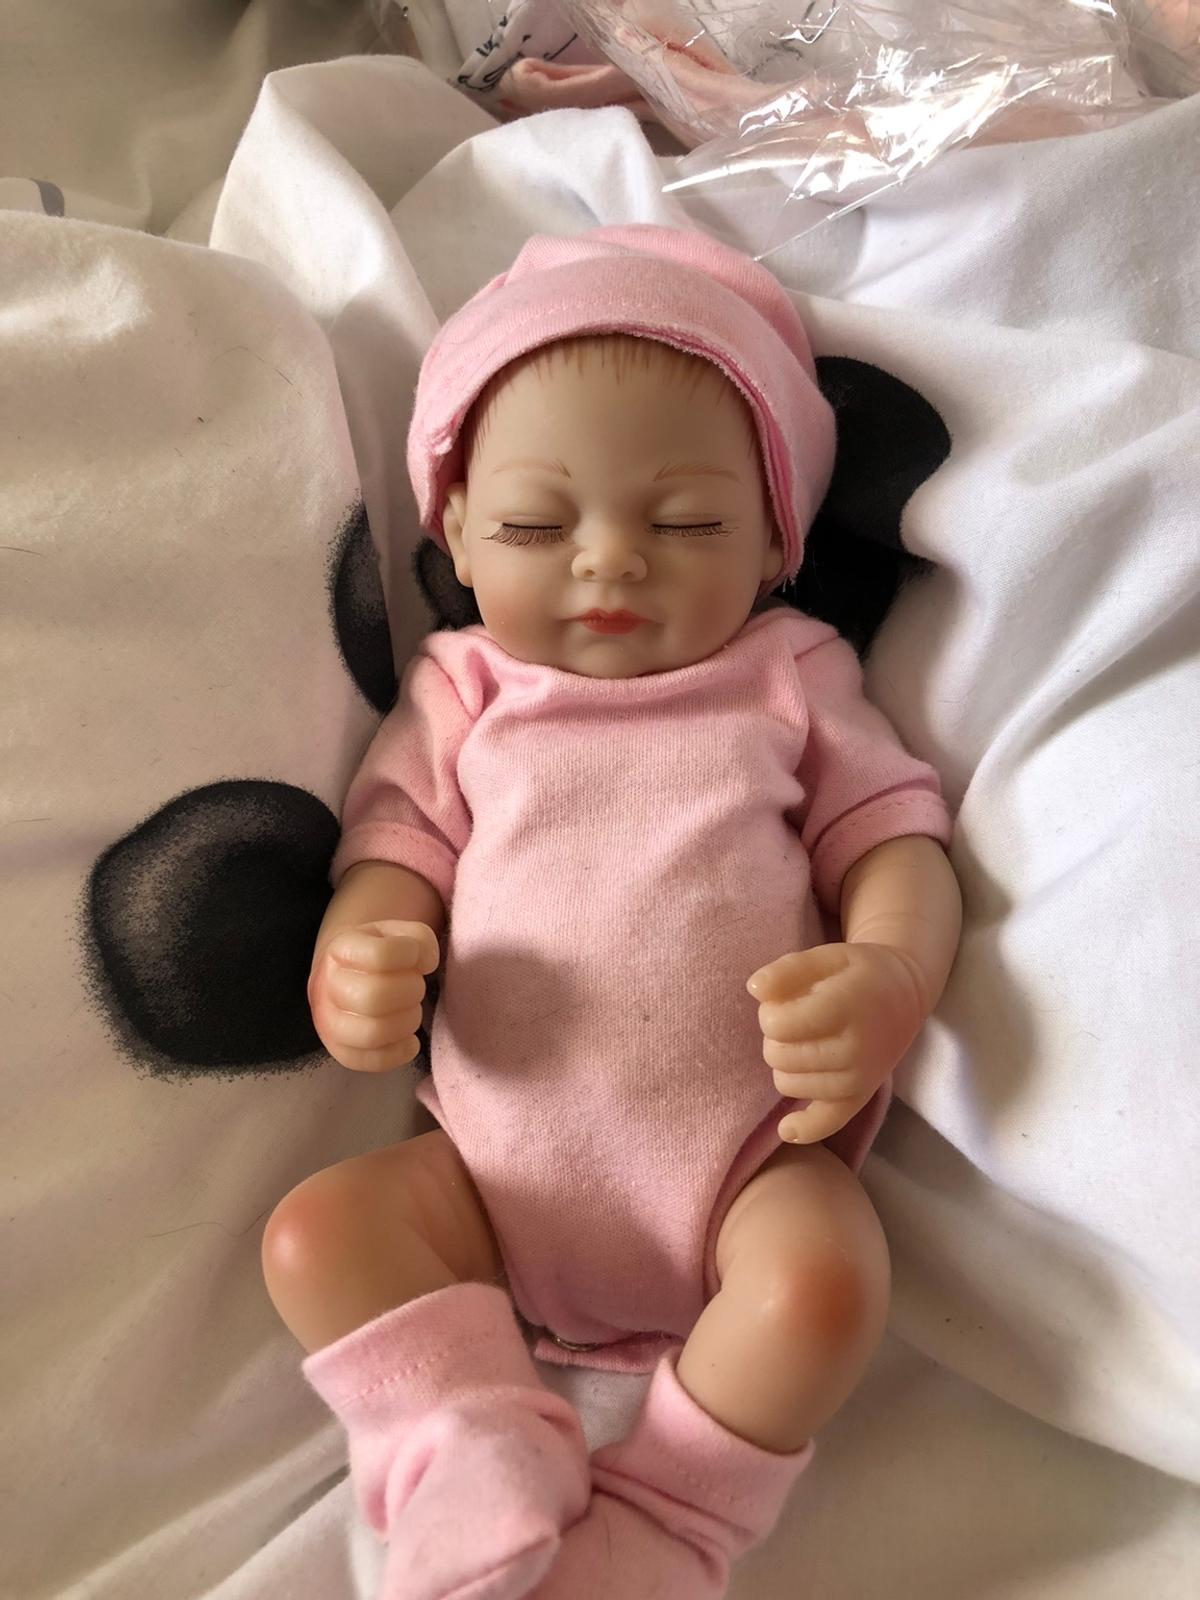 Authentic reborn doll for sale never been played with has been shelved. Pretty much new